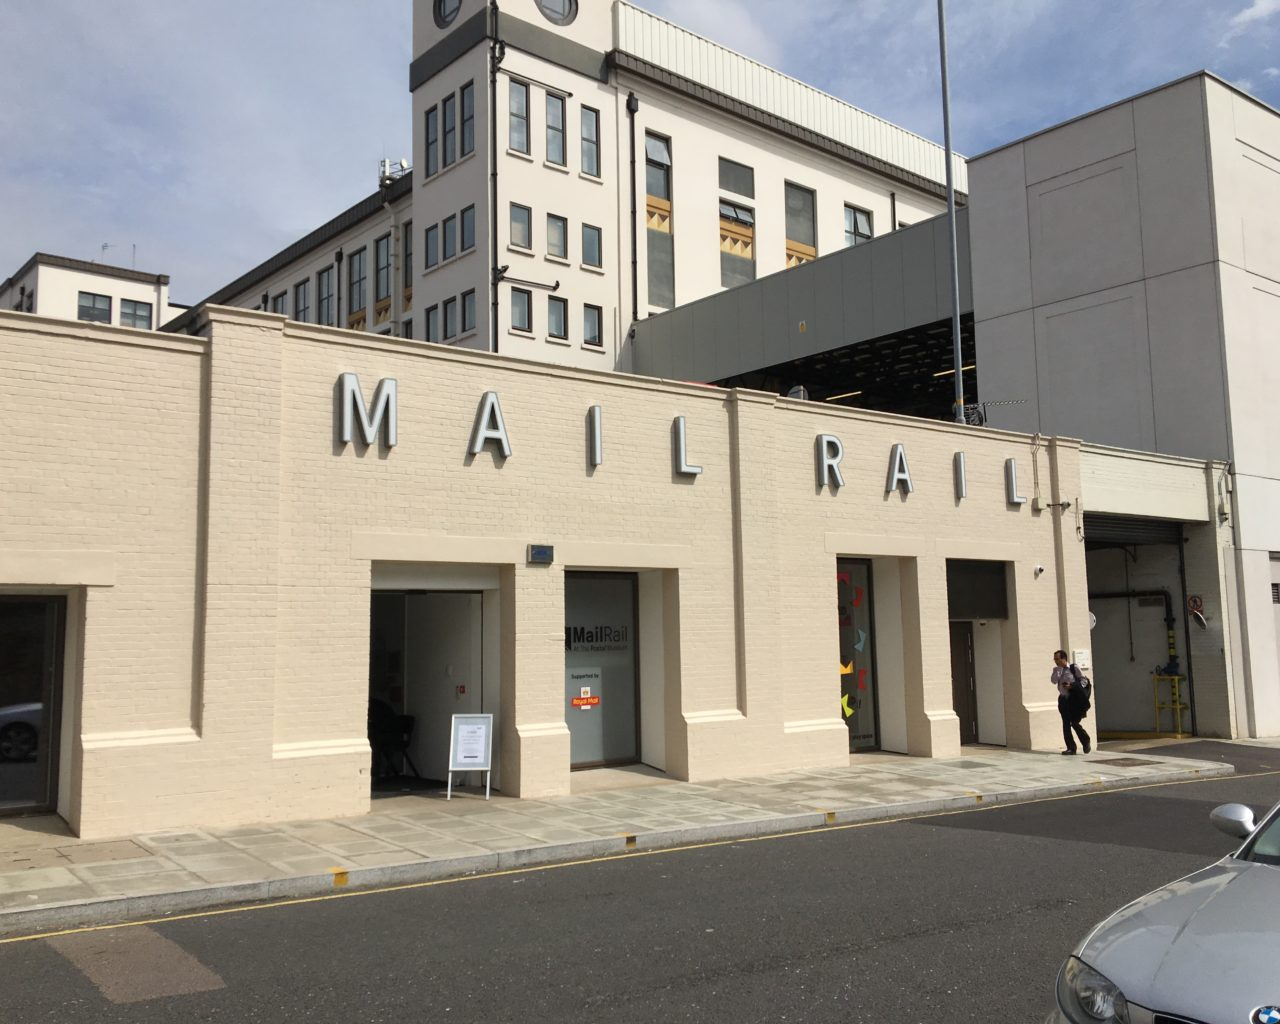 Mail Rail entrance